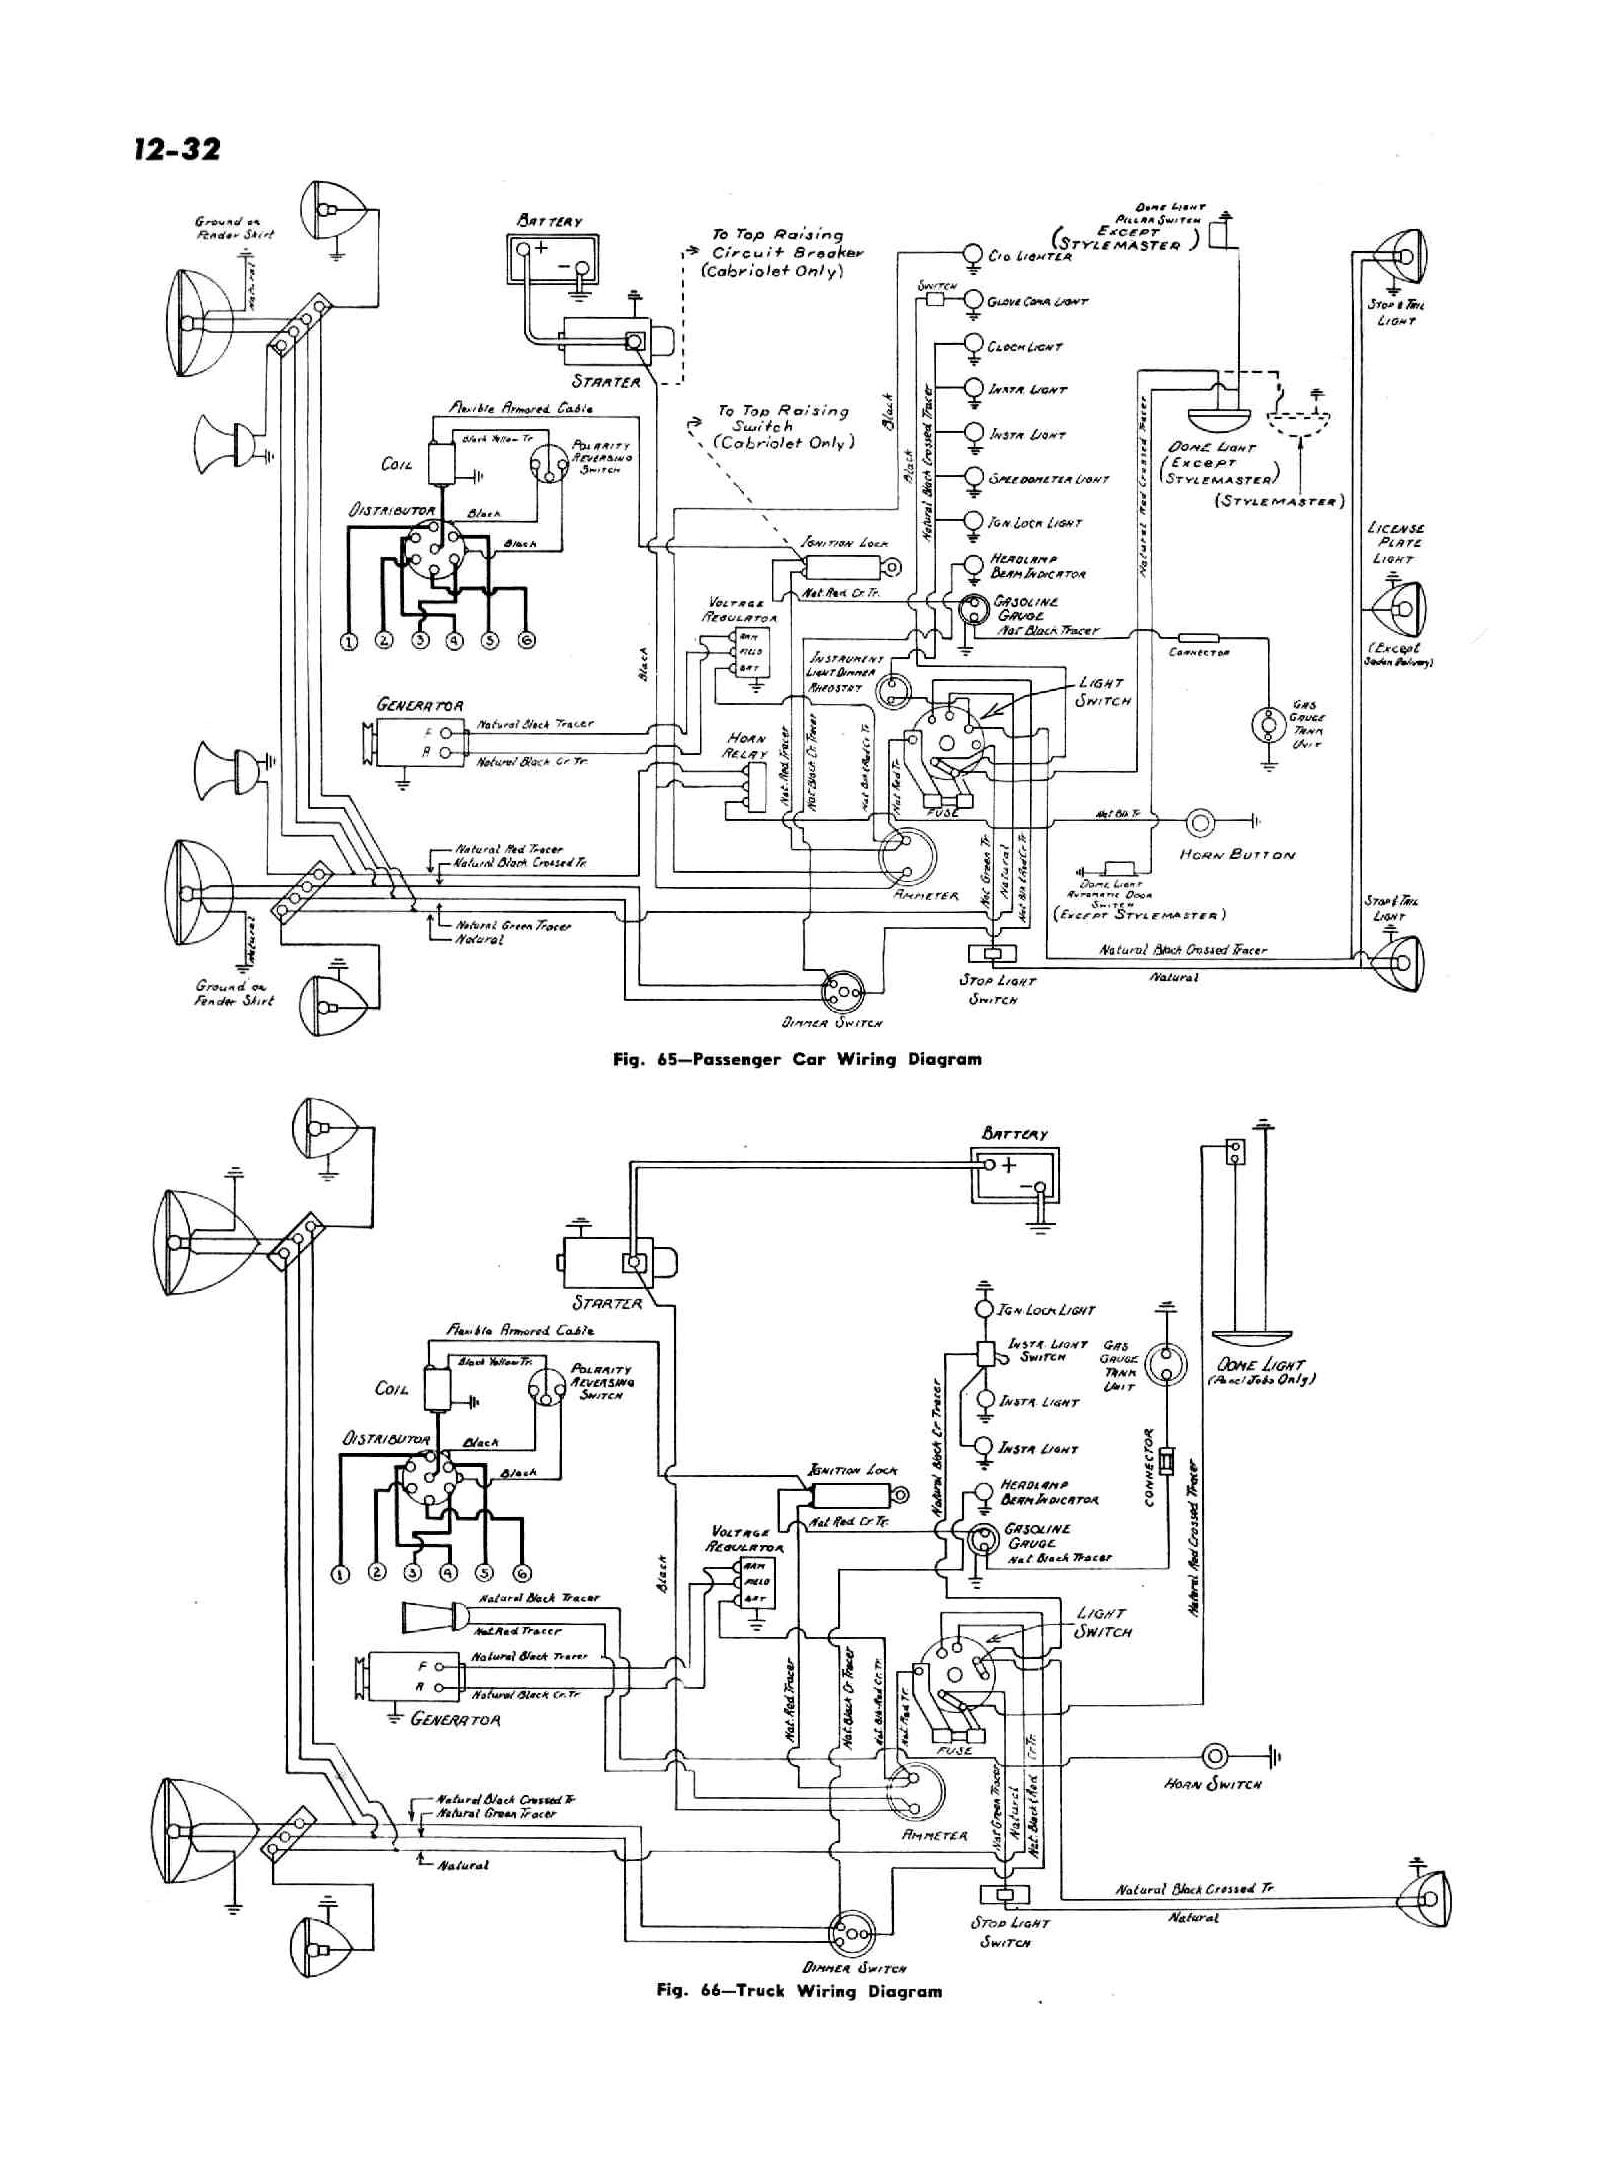 kenworth t800 wiring diagram t download free printable 1996 Kenworth T800 Turn Signal Wiring 2005 Kenworth W900 Wiring Schematic for Data Link